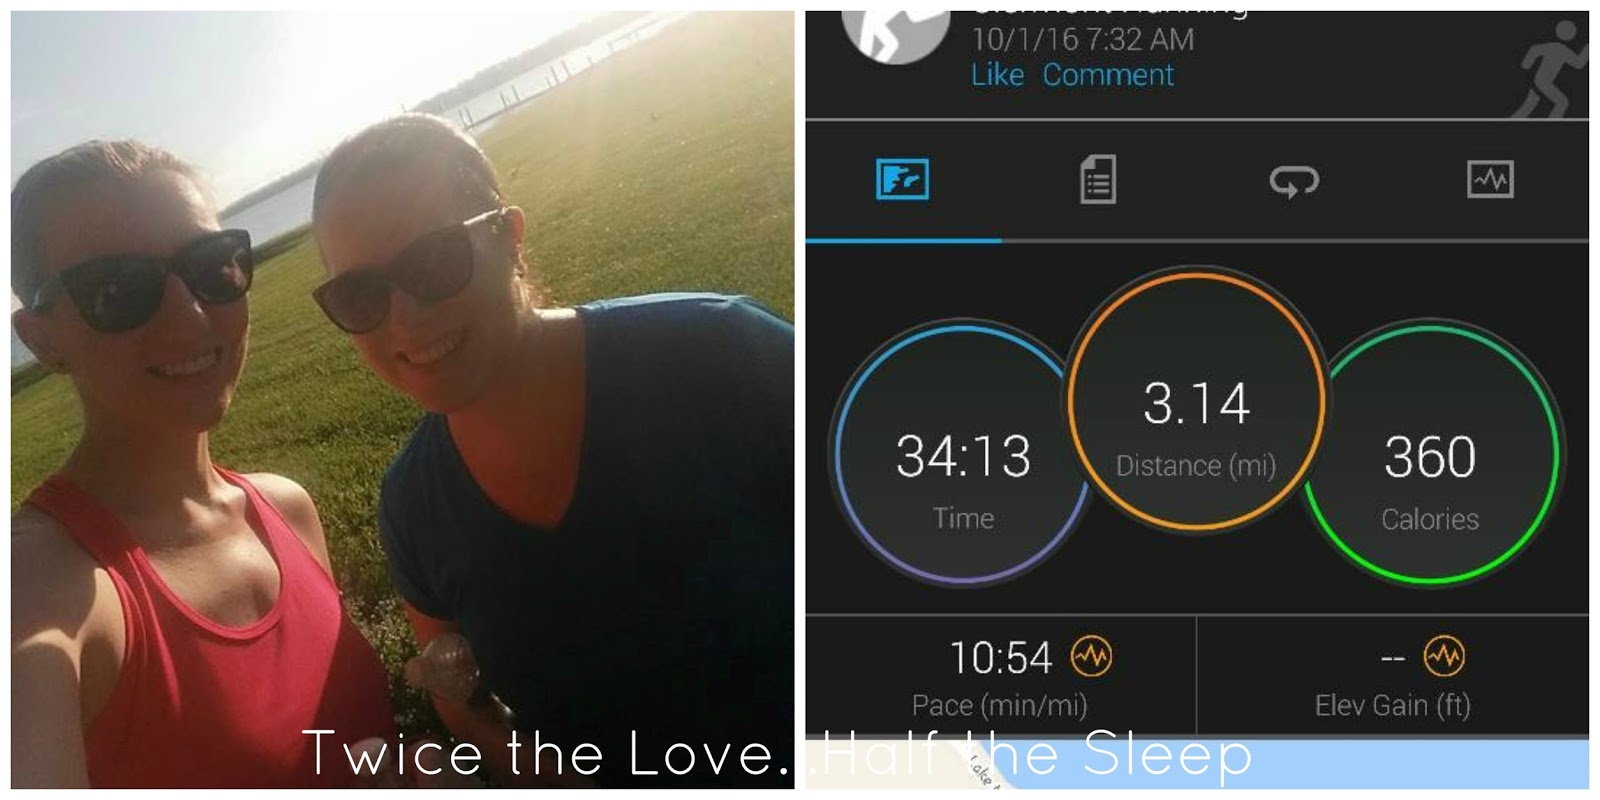 my time. It was a really nice morning a cool breeze minimal humidity #0A64C1